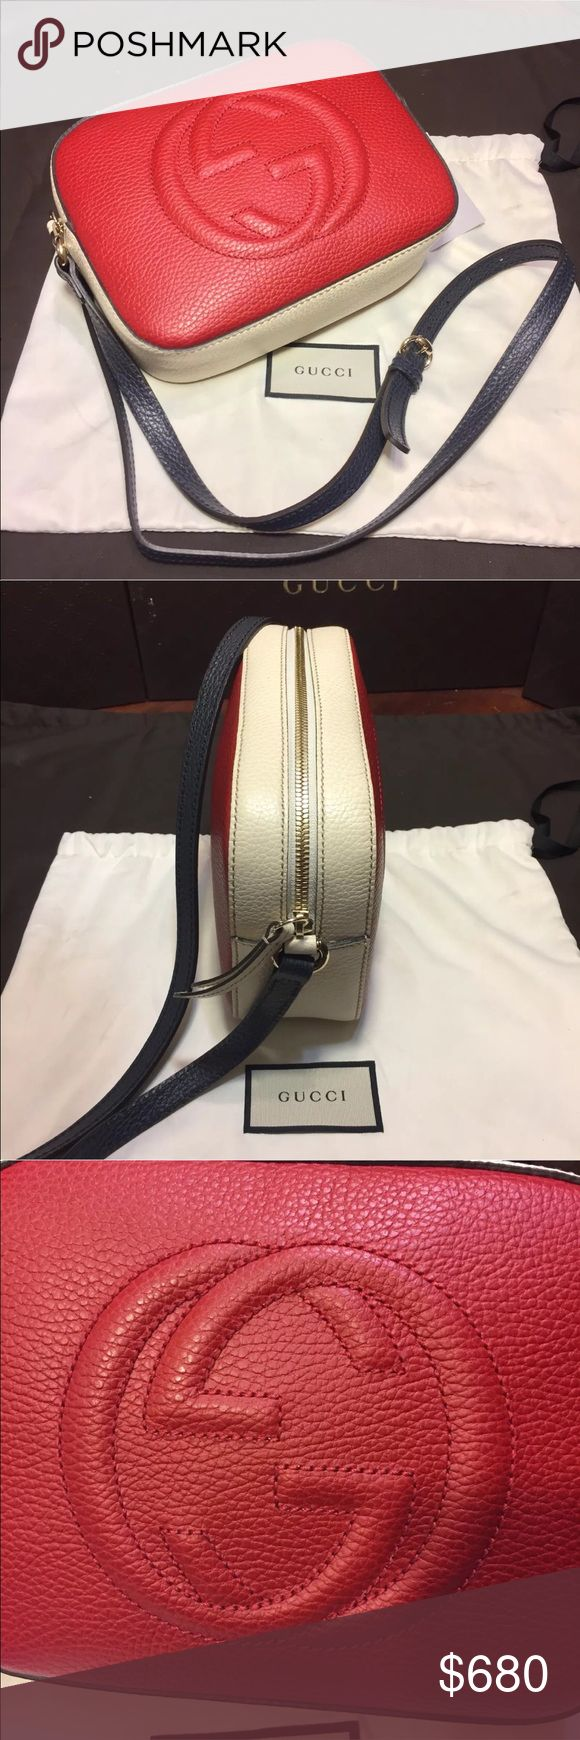 Red Gucci Soho Disco Crossbody Bag 100% Authentic ♦️ We are a very negotiable service ♦️ We provide overnight shipping and express shipping ♦️ Our transactions are made through third party applications ♦️ If you are interested in buying this product please contact us via 646-431-6521 ♦️ Gucci Bags Crossbody Bags